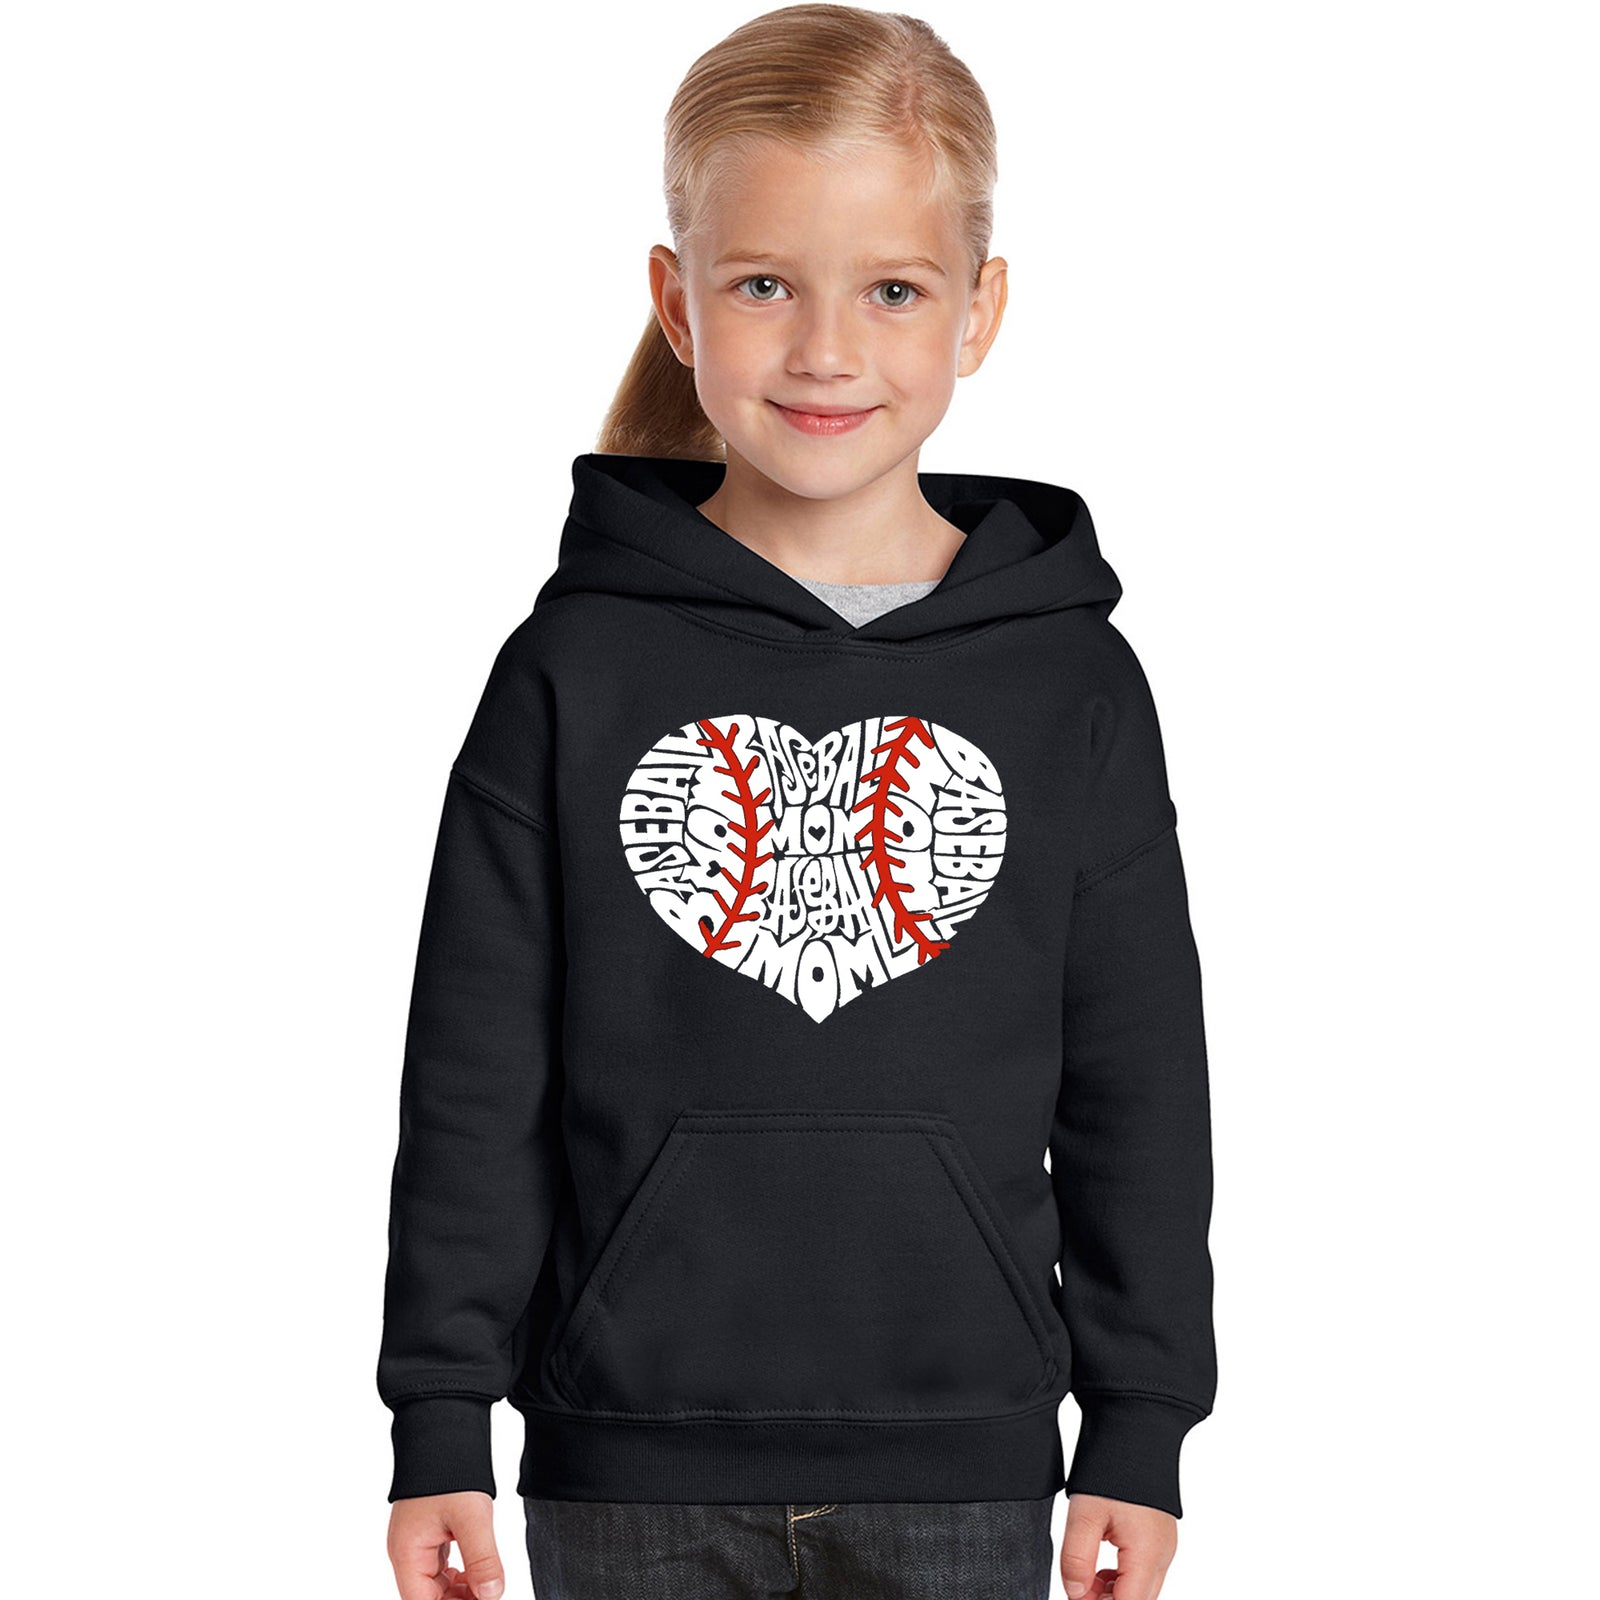 Girl's Word Art Hooded Sweatshirt - Baseball Mom